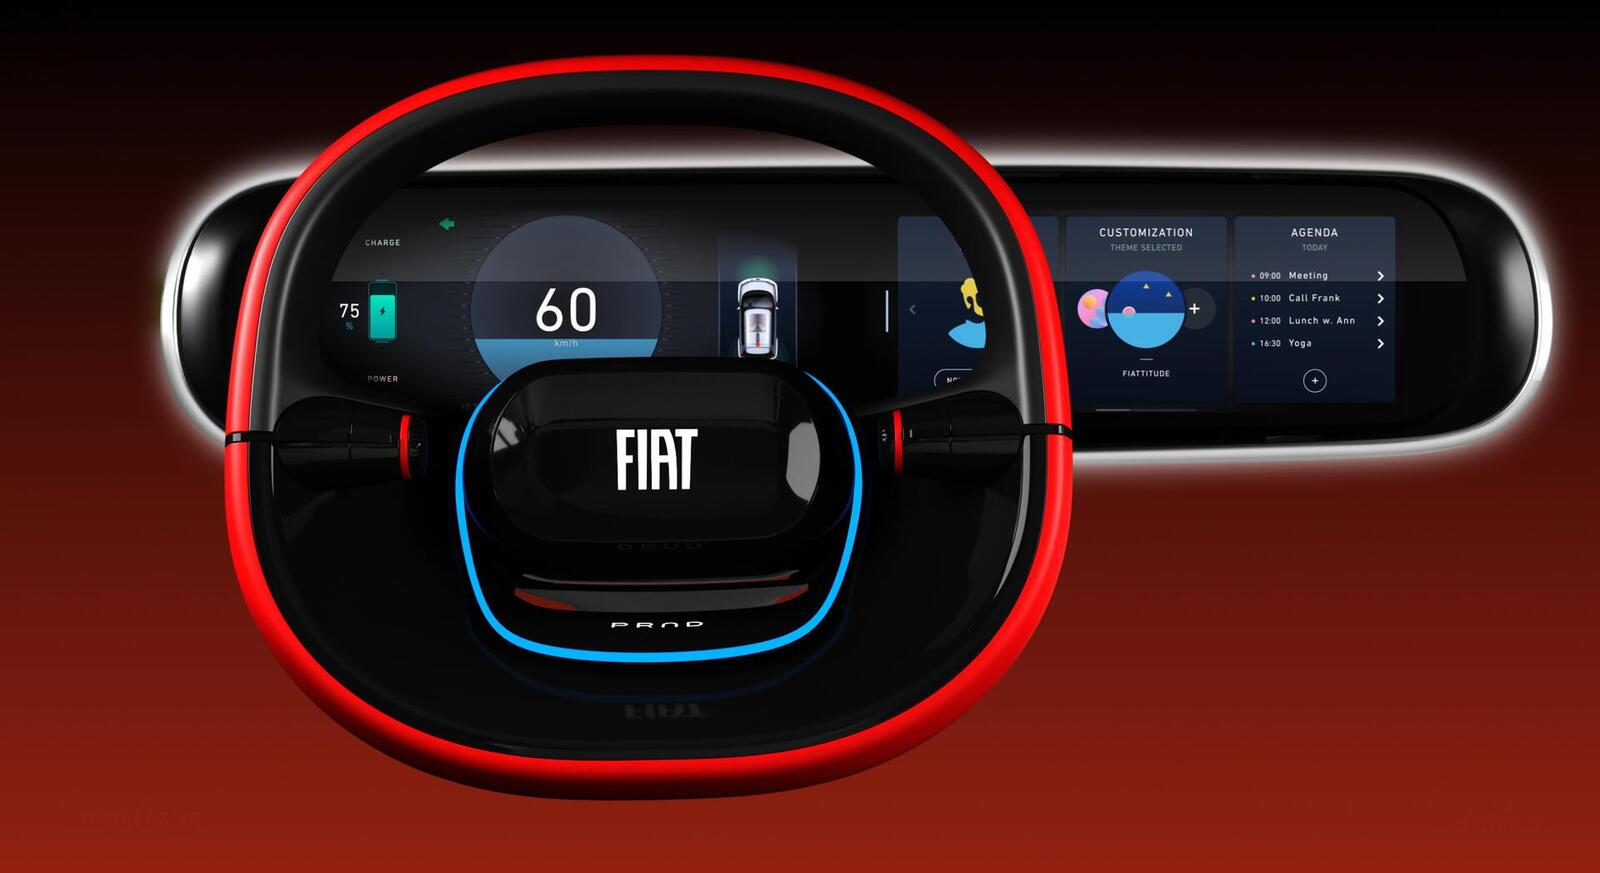 fiat-newest-concept-is-a-modular-electric-car-you-customize-7.jpg